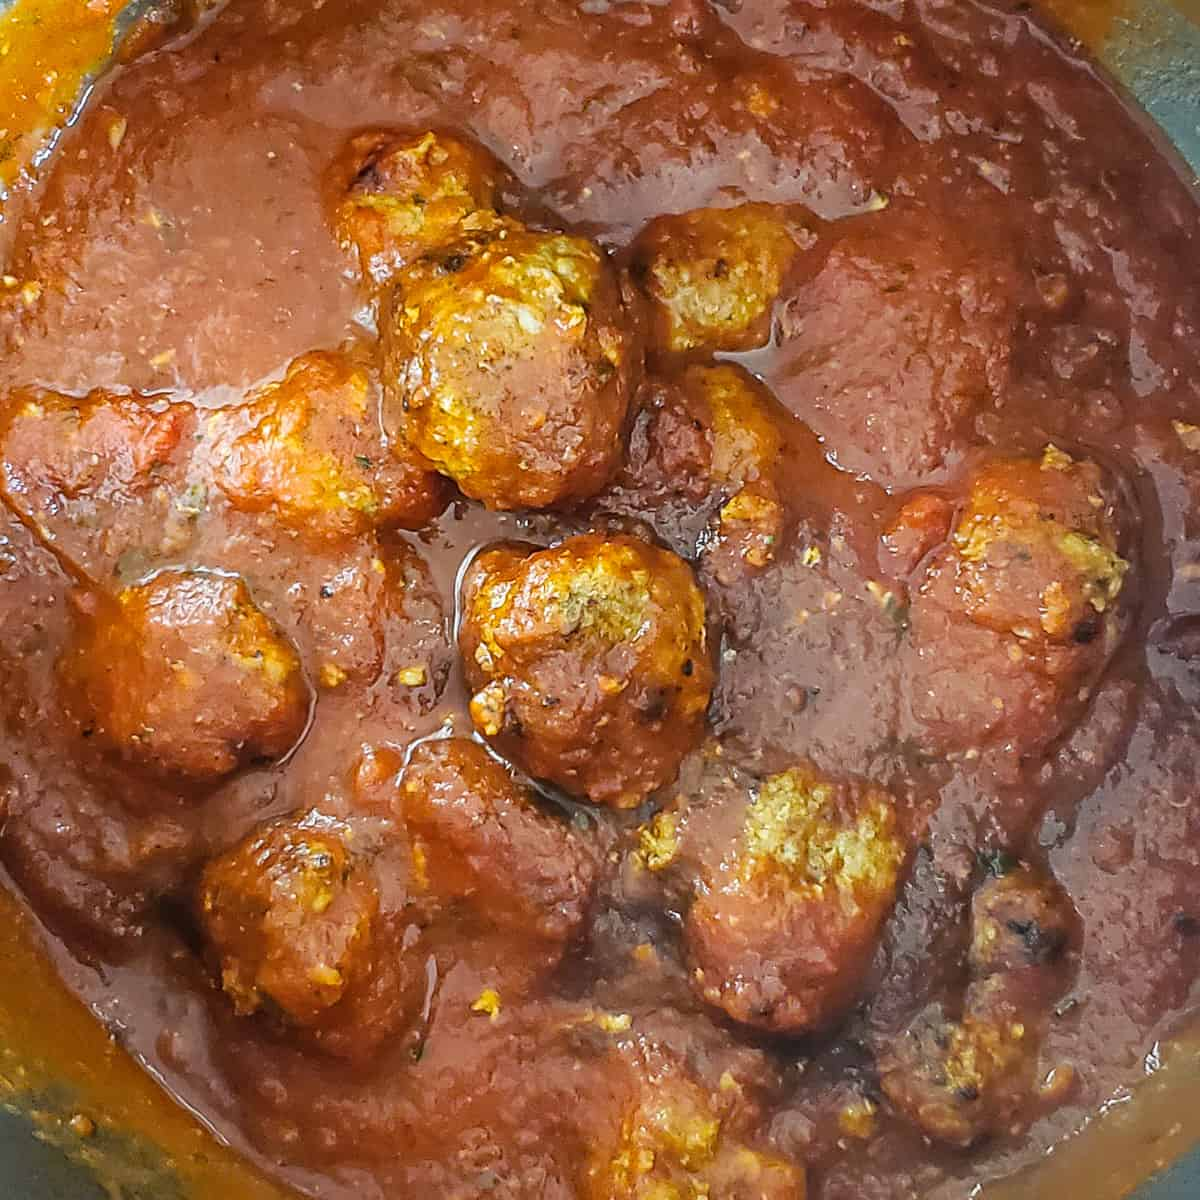 Meatballs and sauce shown in an Instant Pot after pressure cooking.